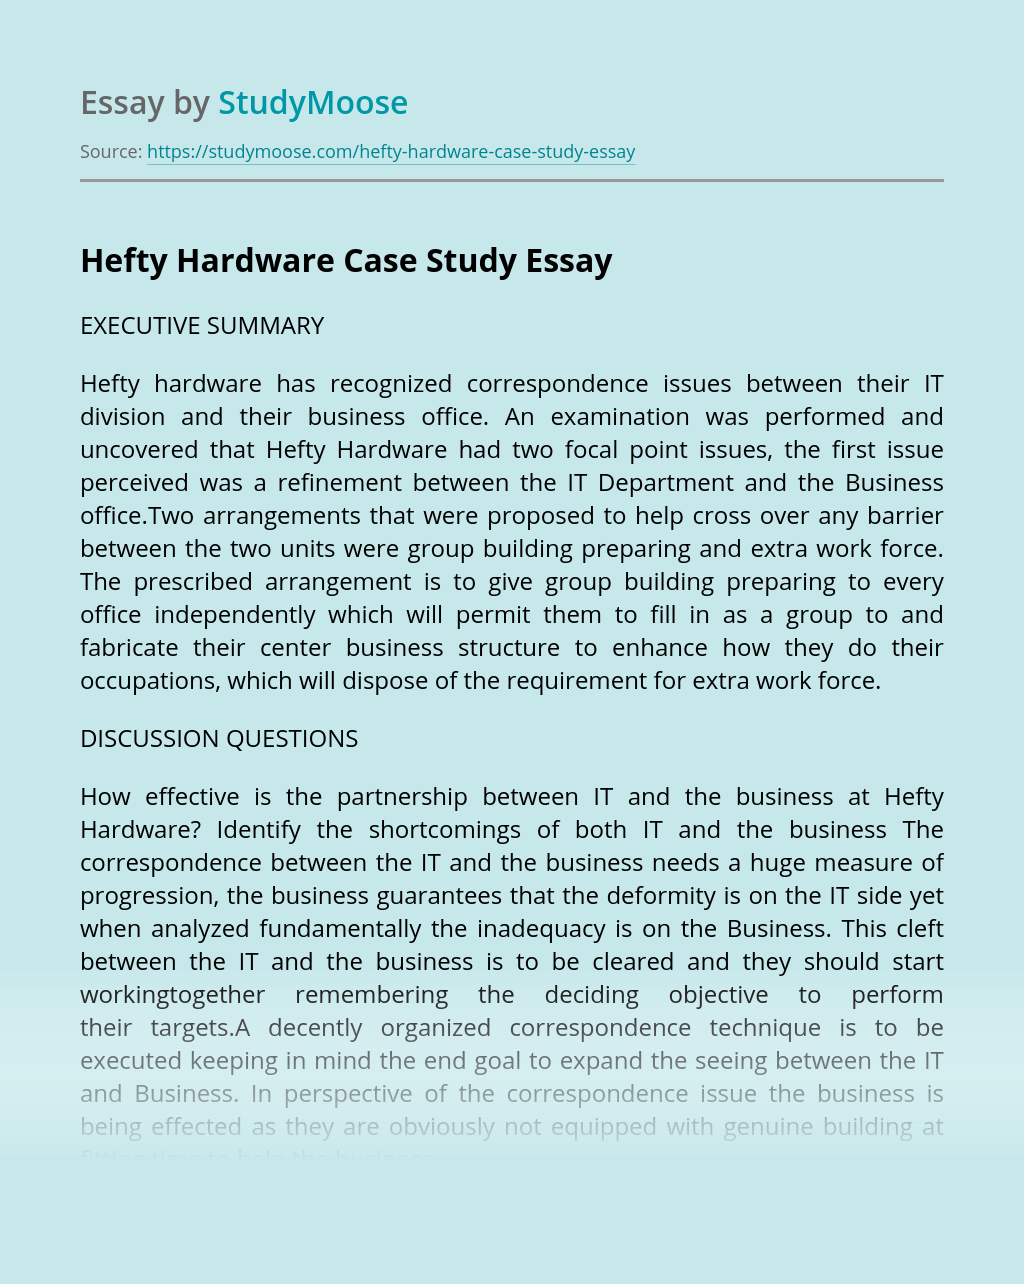 Hefty Hardware Case Study